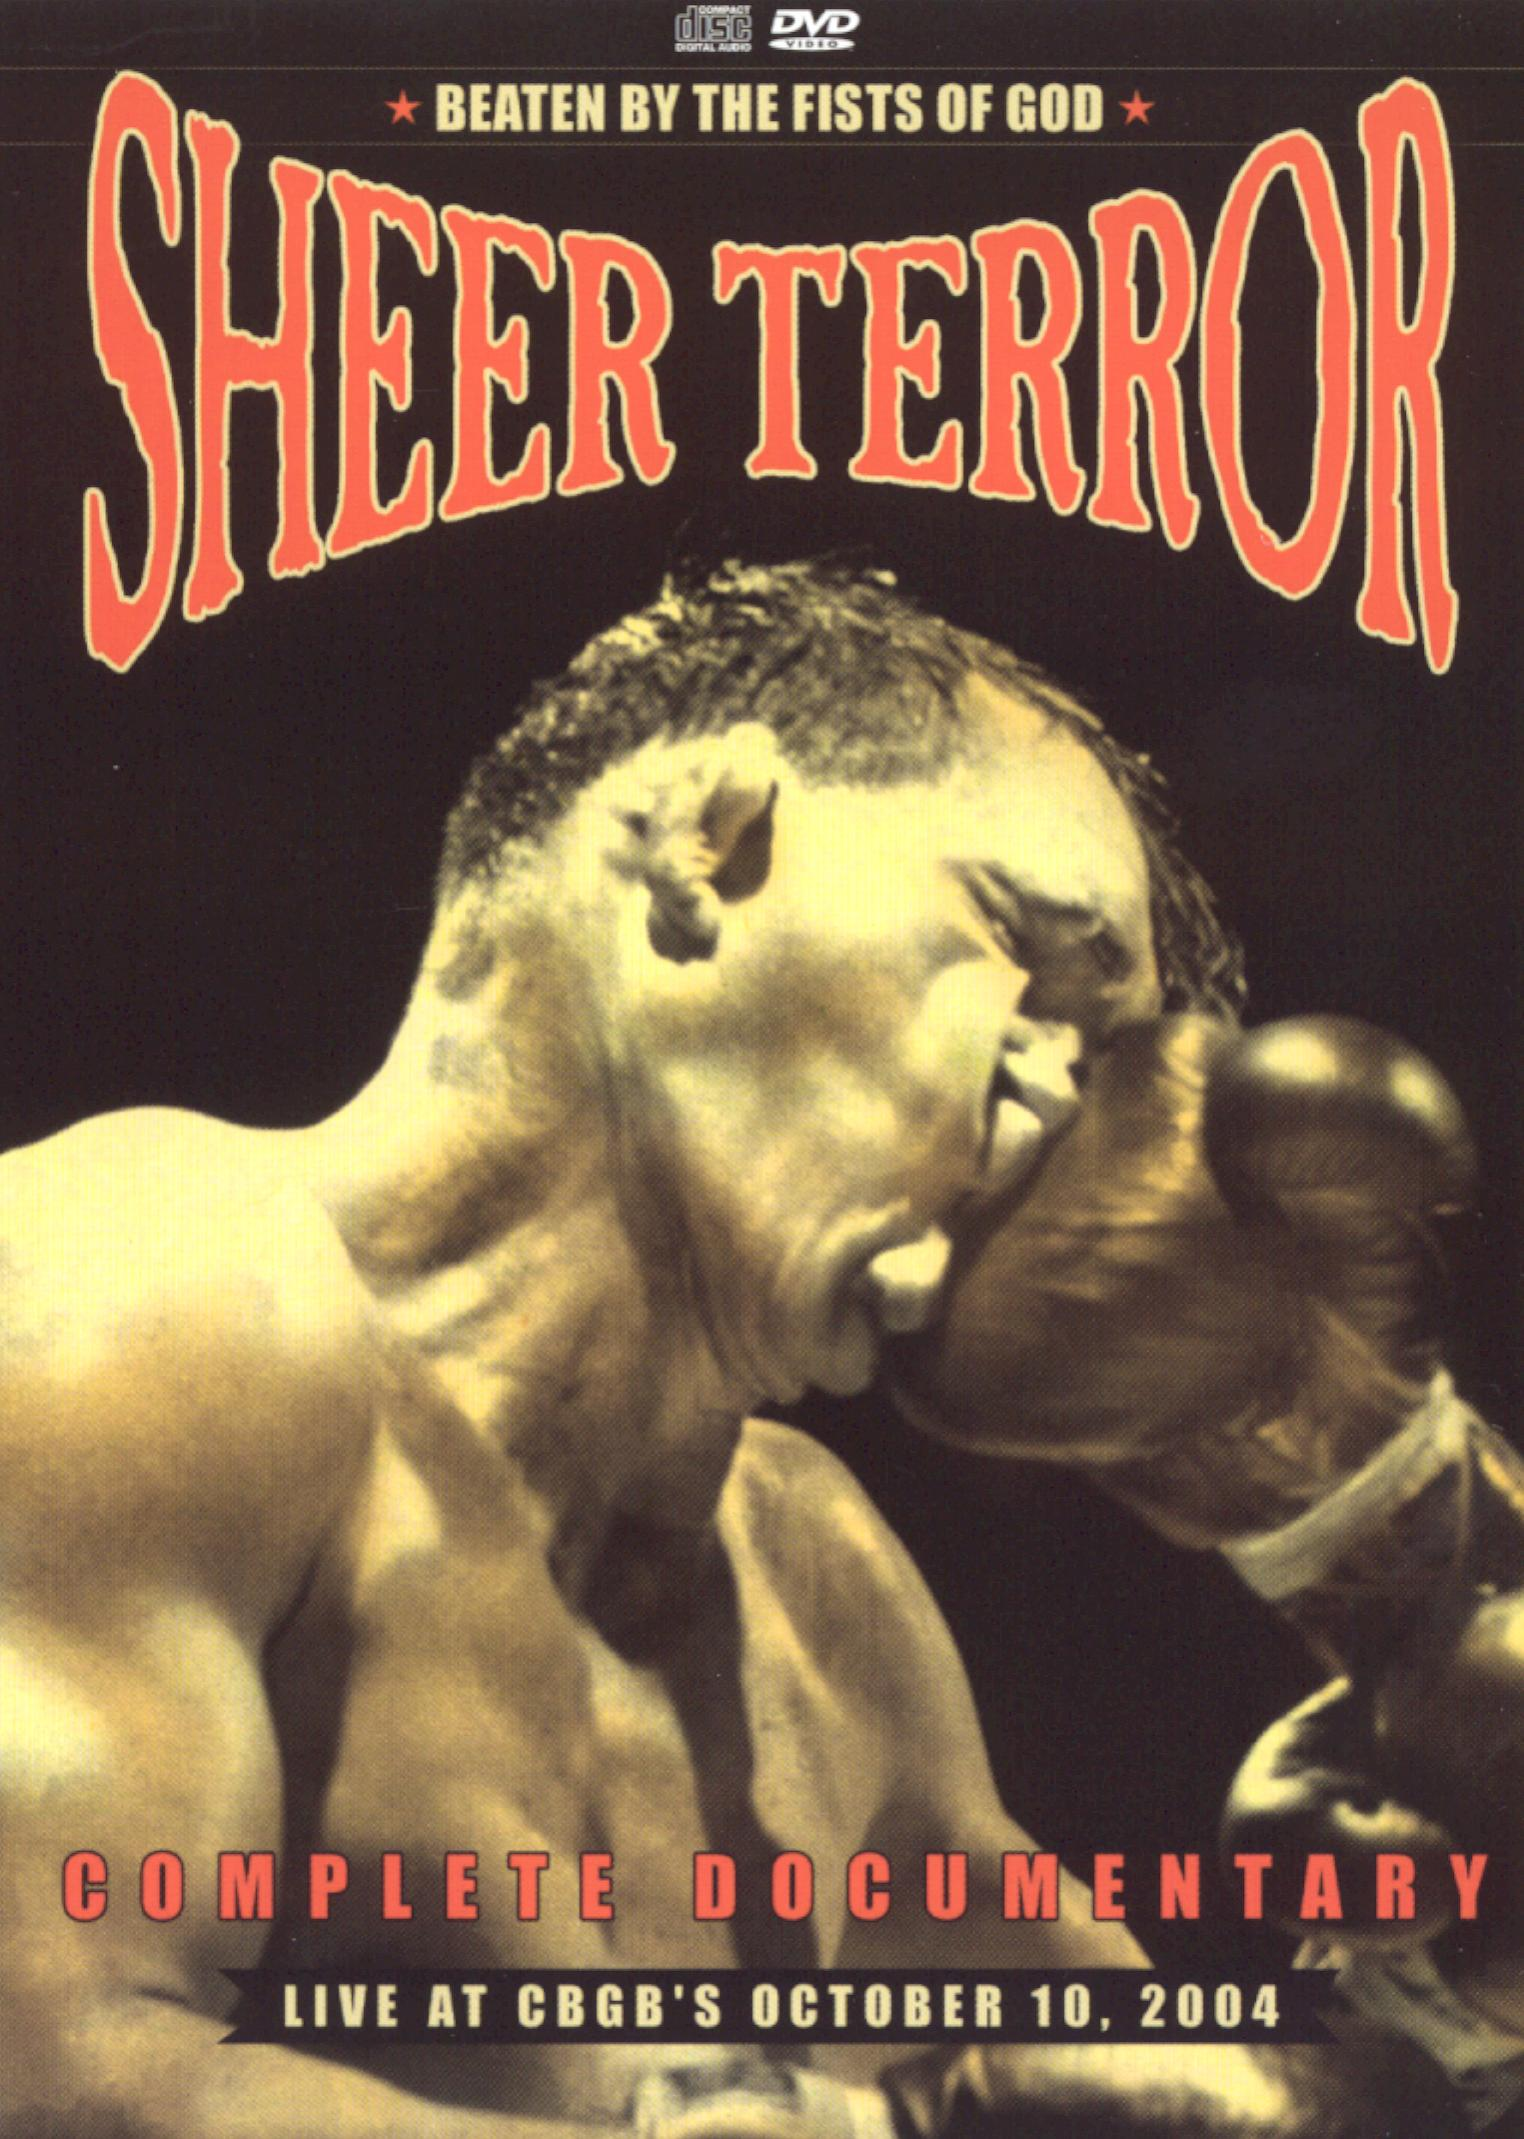 Sheer Terror: Beaten By the Fists of God